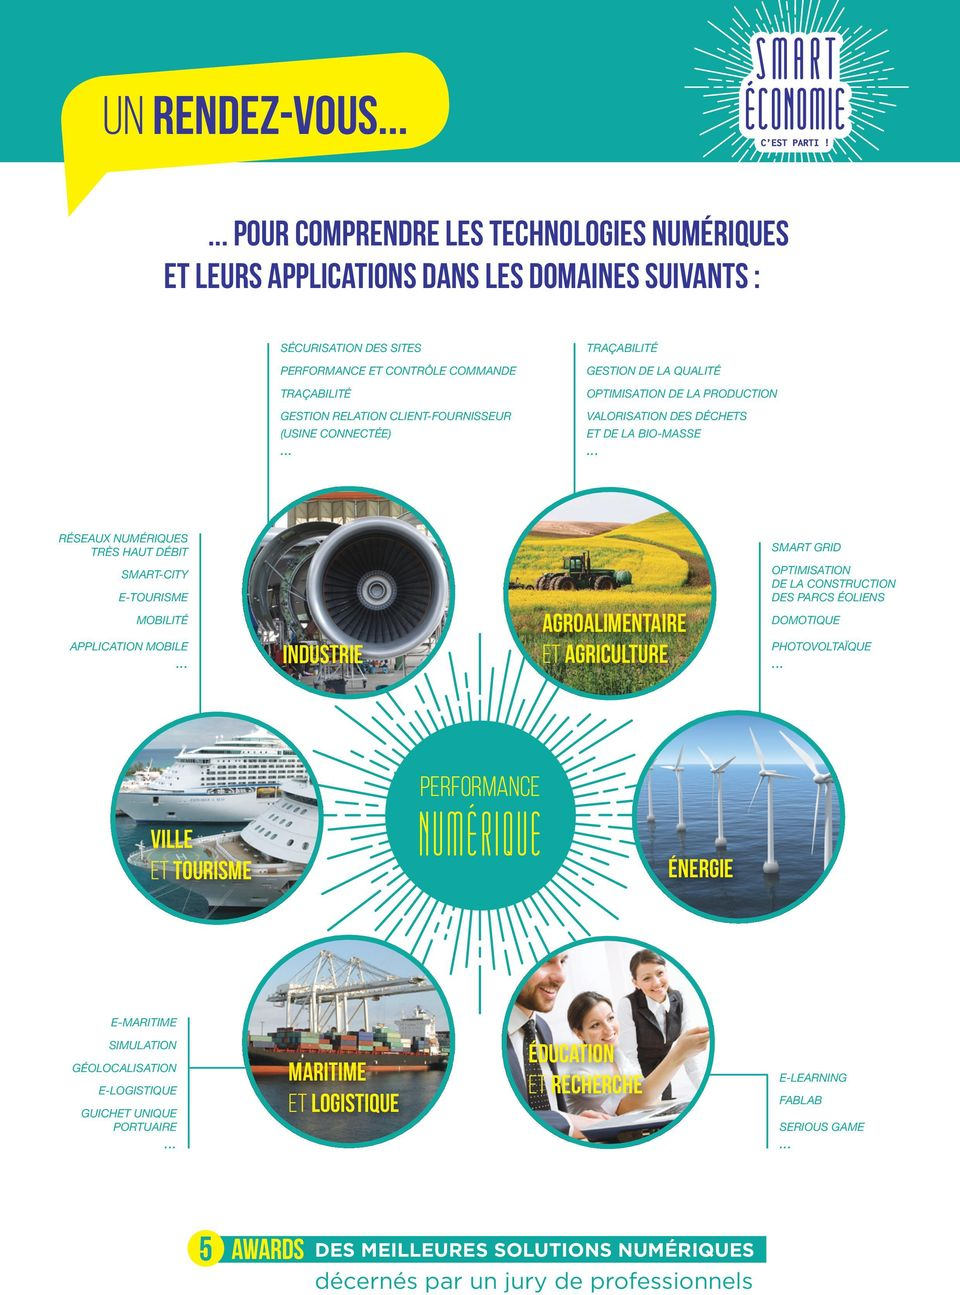 Smart-city E-tourisme Mobilité Application mobile industrie agroalimentaire et agriculture Optimisation de la construction des parcs éoliens Domotique Photovoltaïque ville et tourisme performance